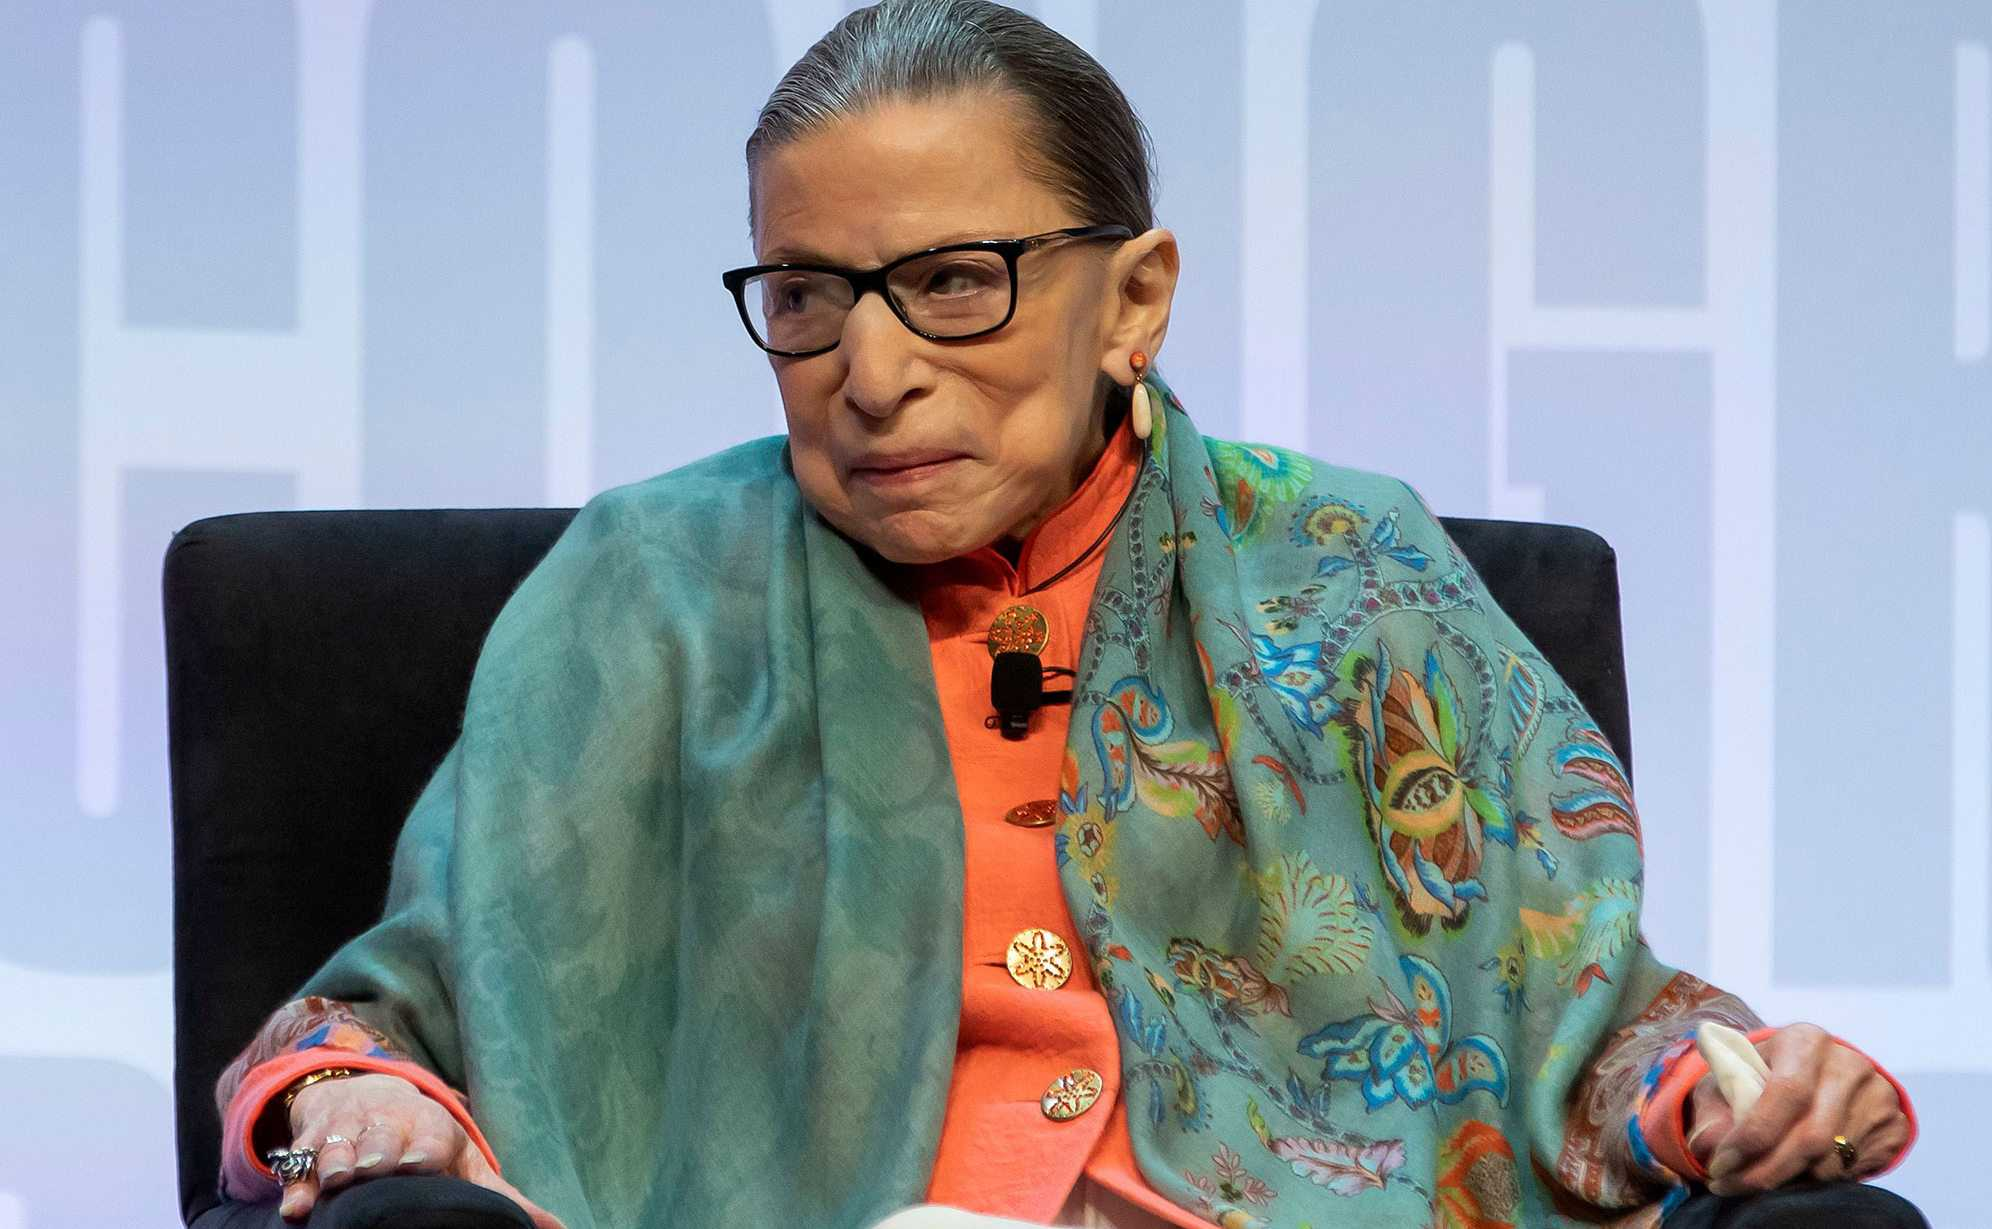 Ruth Bader Ginsburg Famous For